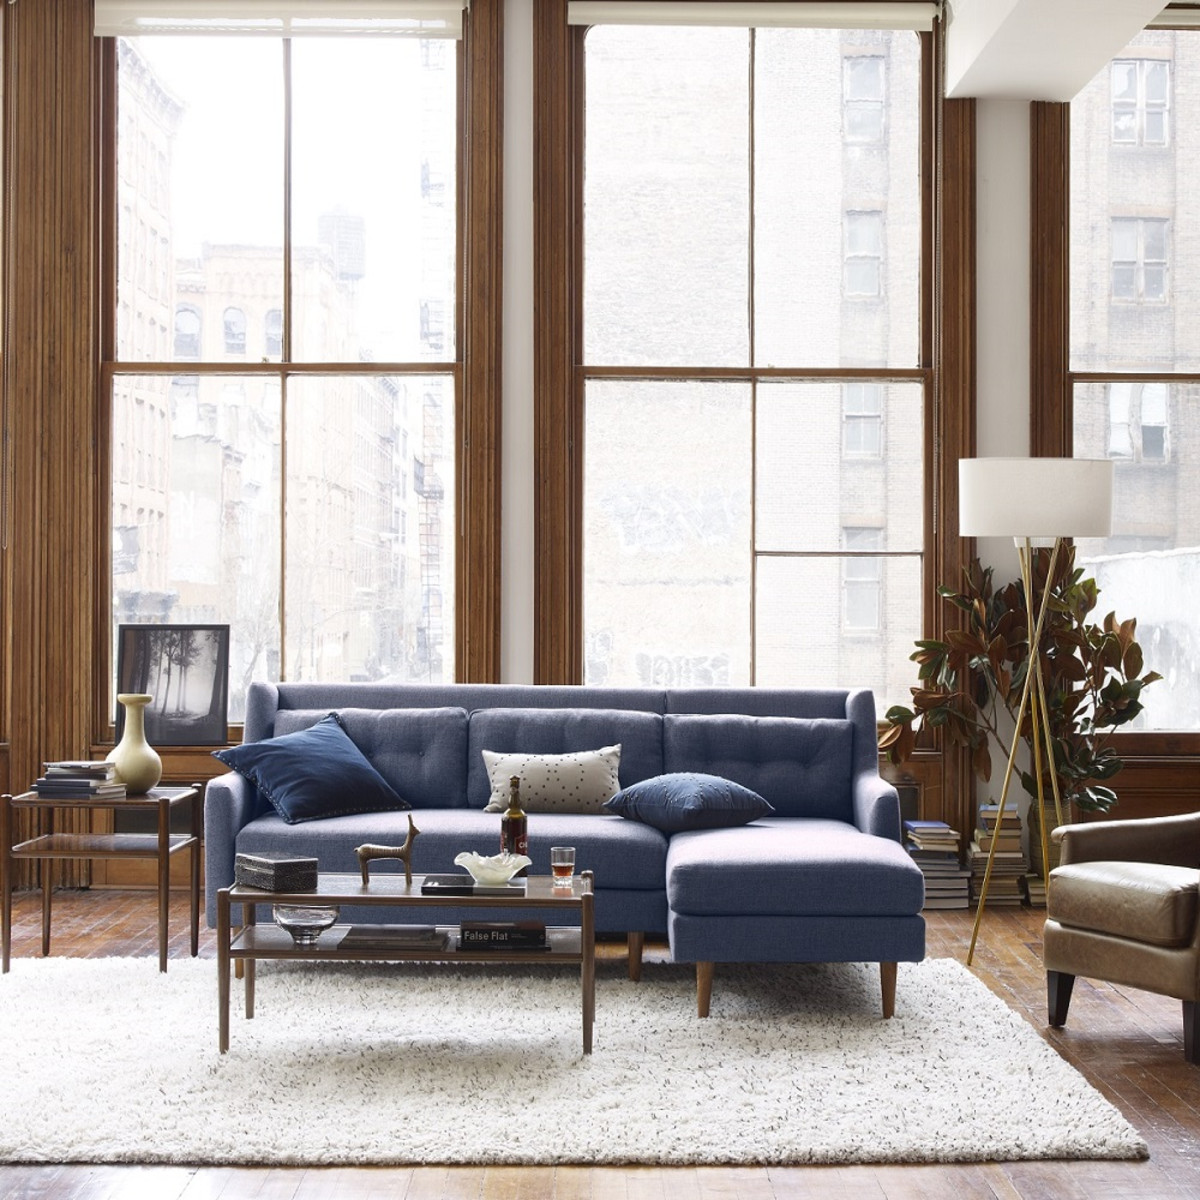 New West Elm Couch Reviews 45 For Sofa Room Ideas With West Elm Couch  Reviews